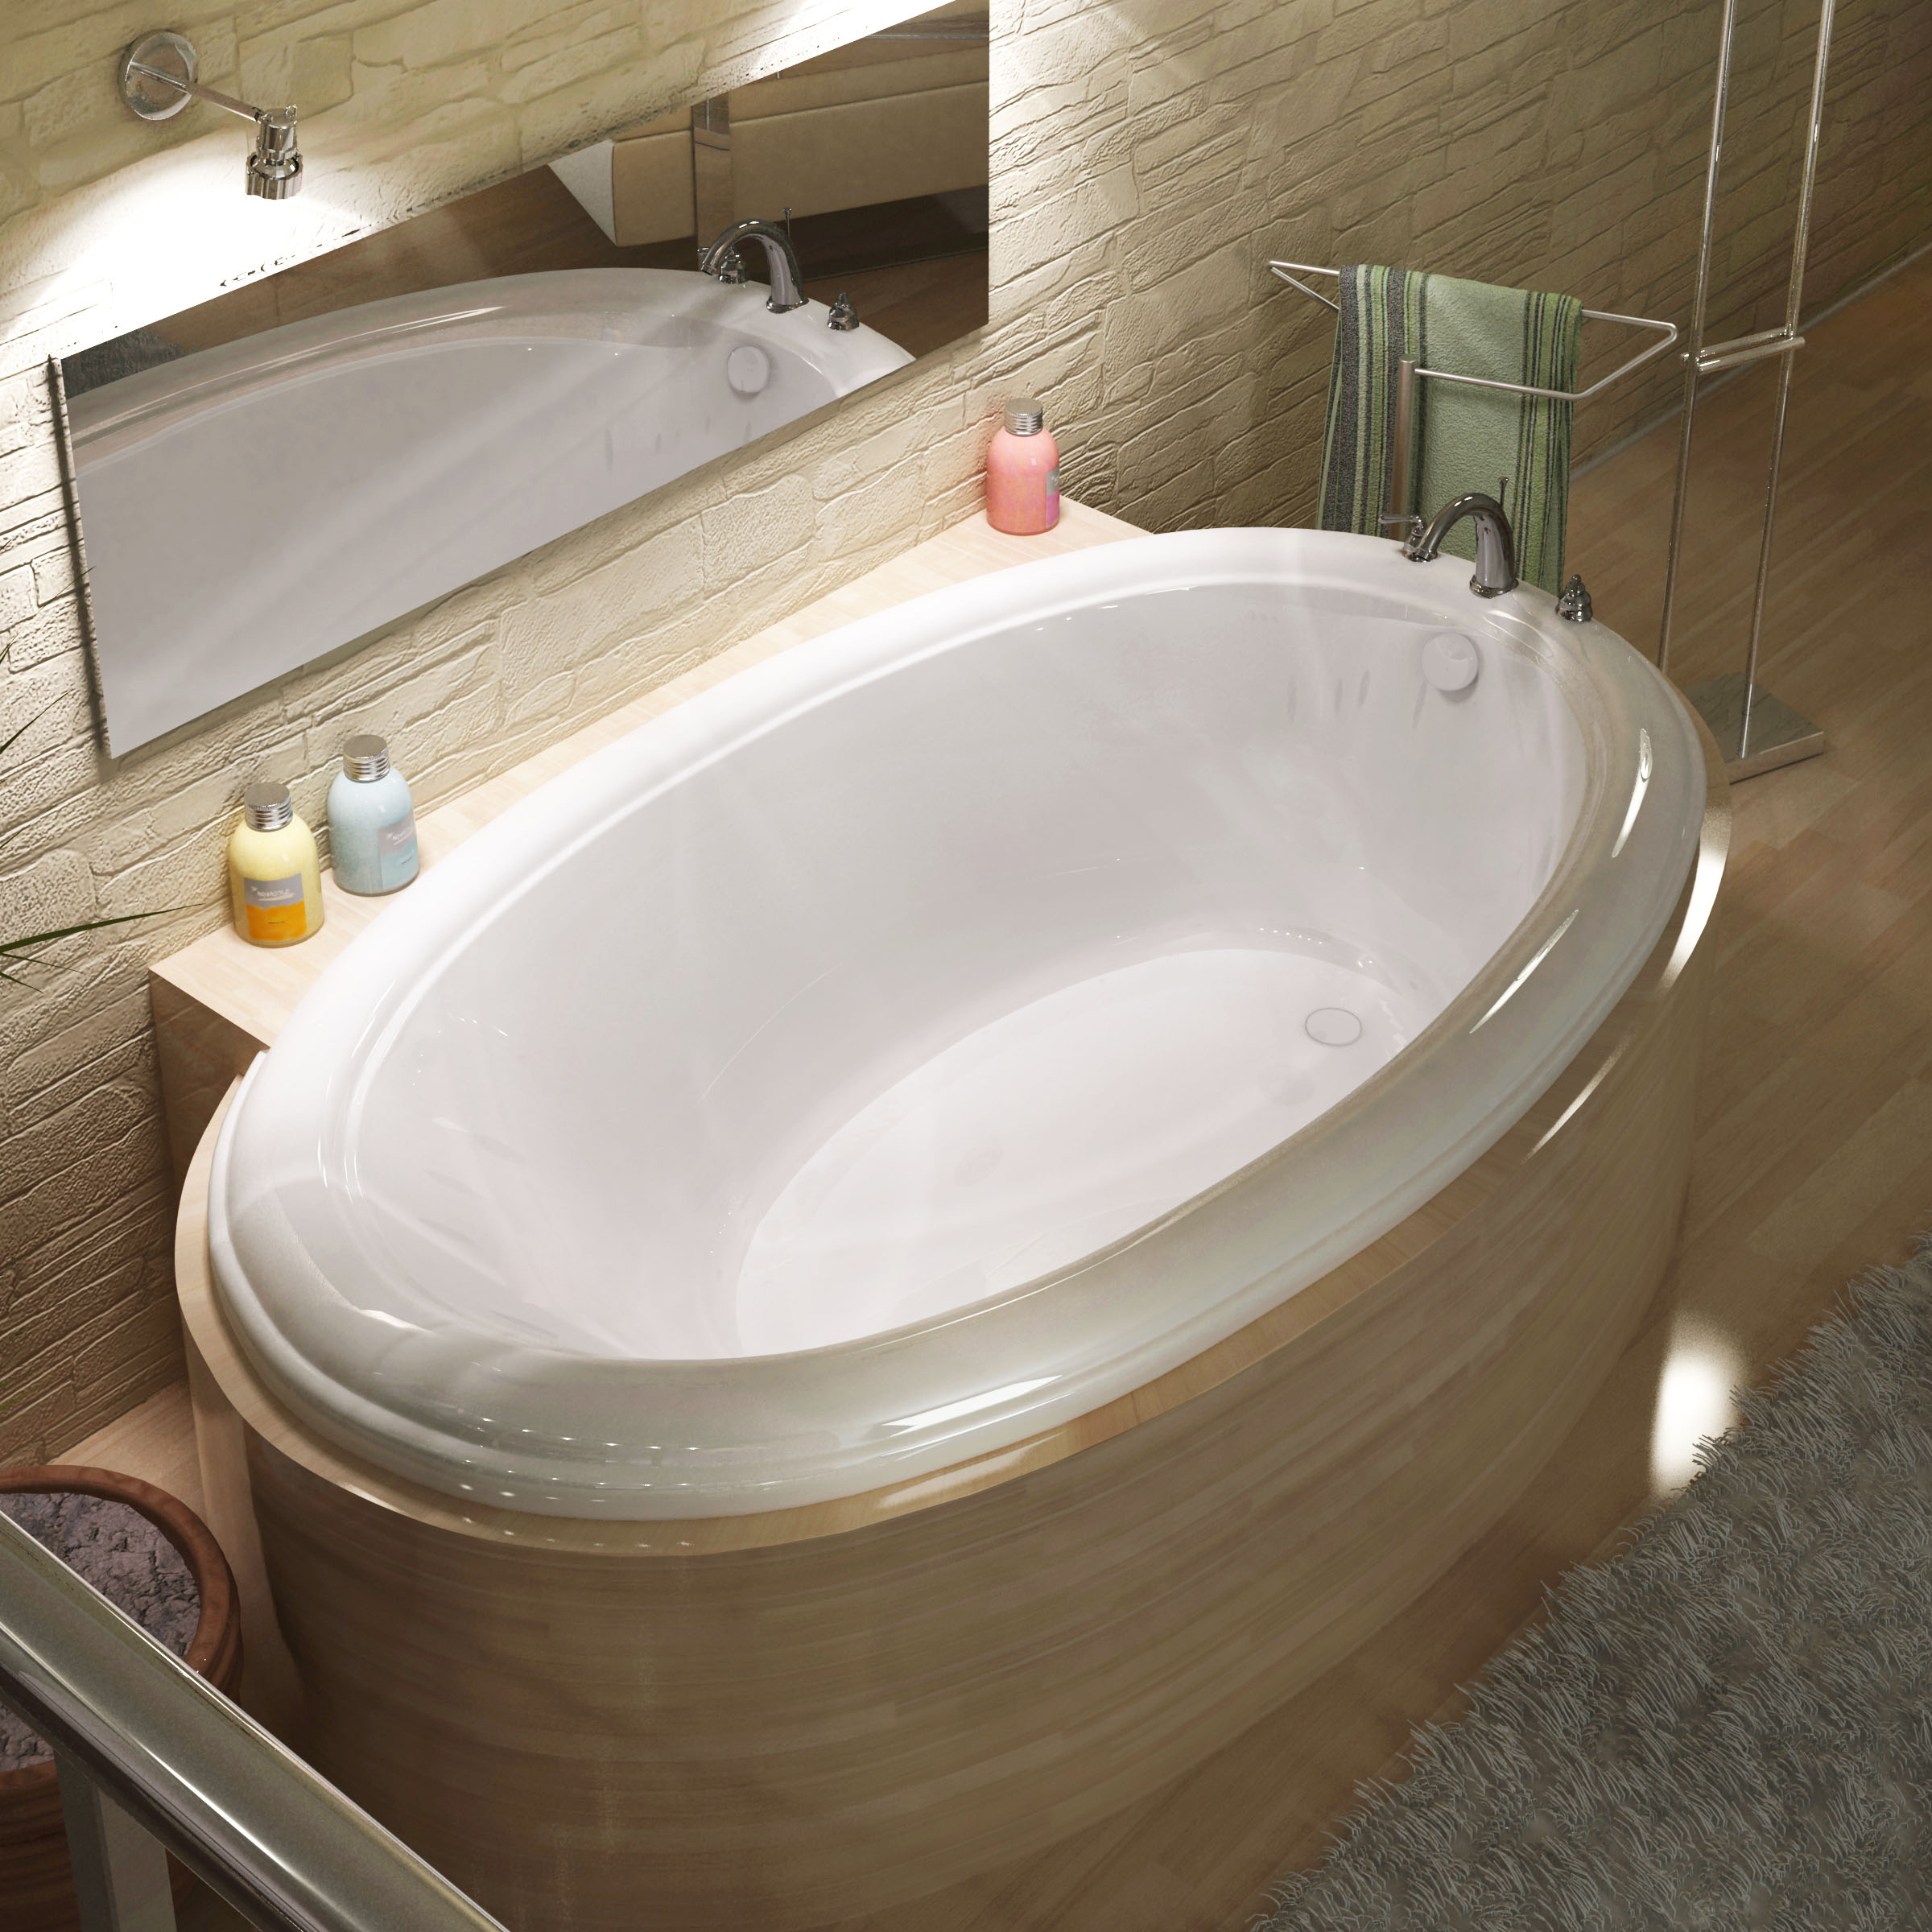 bathtubs shower tomlin ancaml combination page corner comment pin tubs game acrylic systems tub and require jet